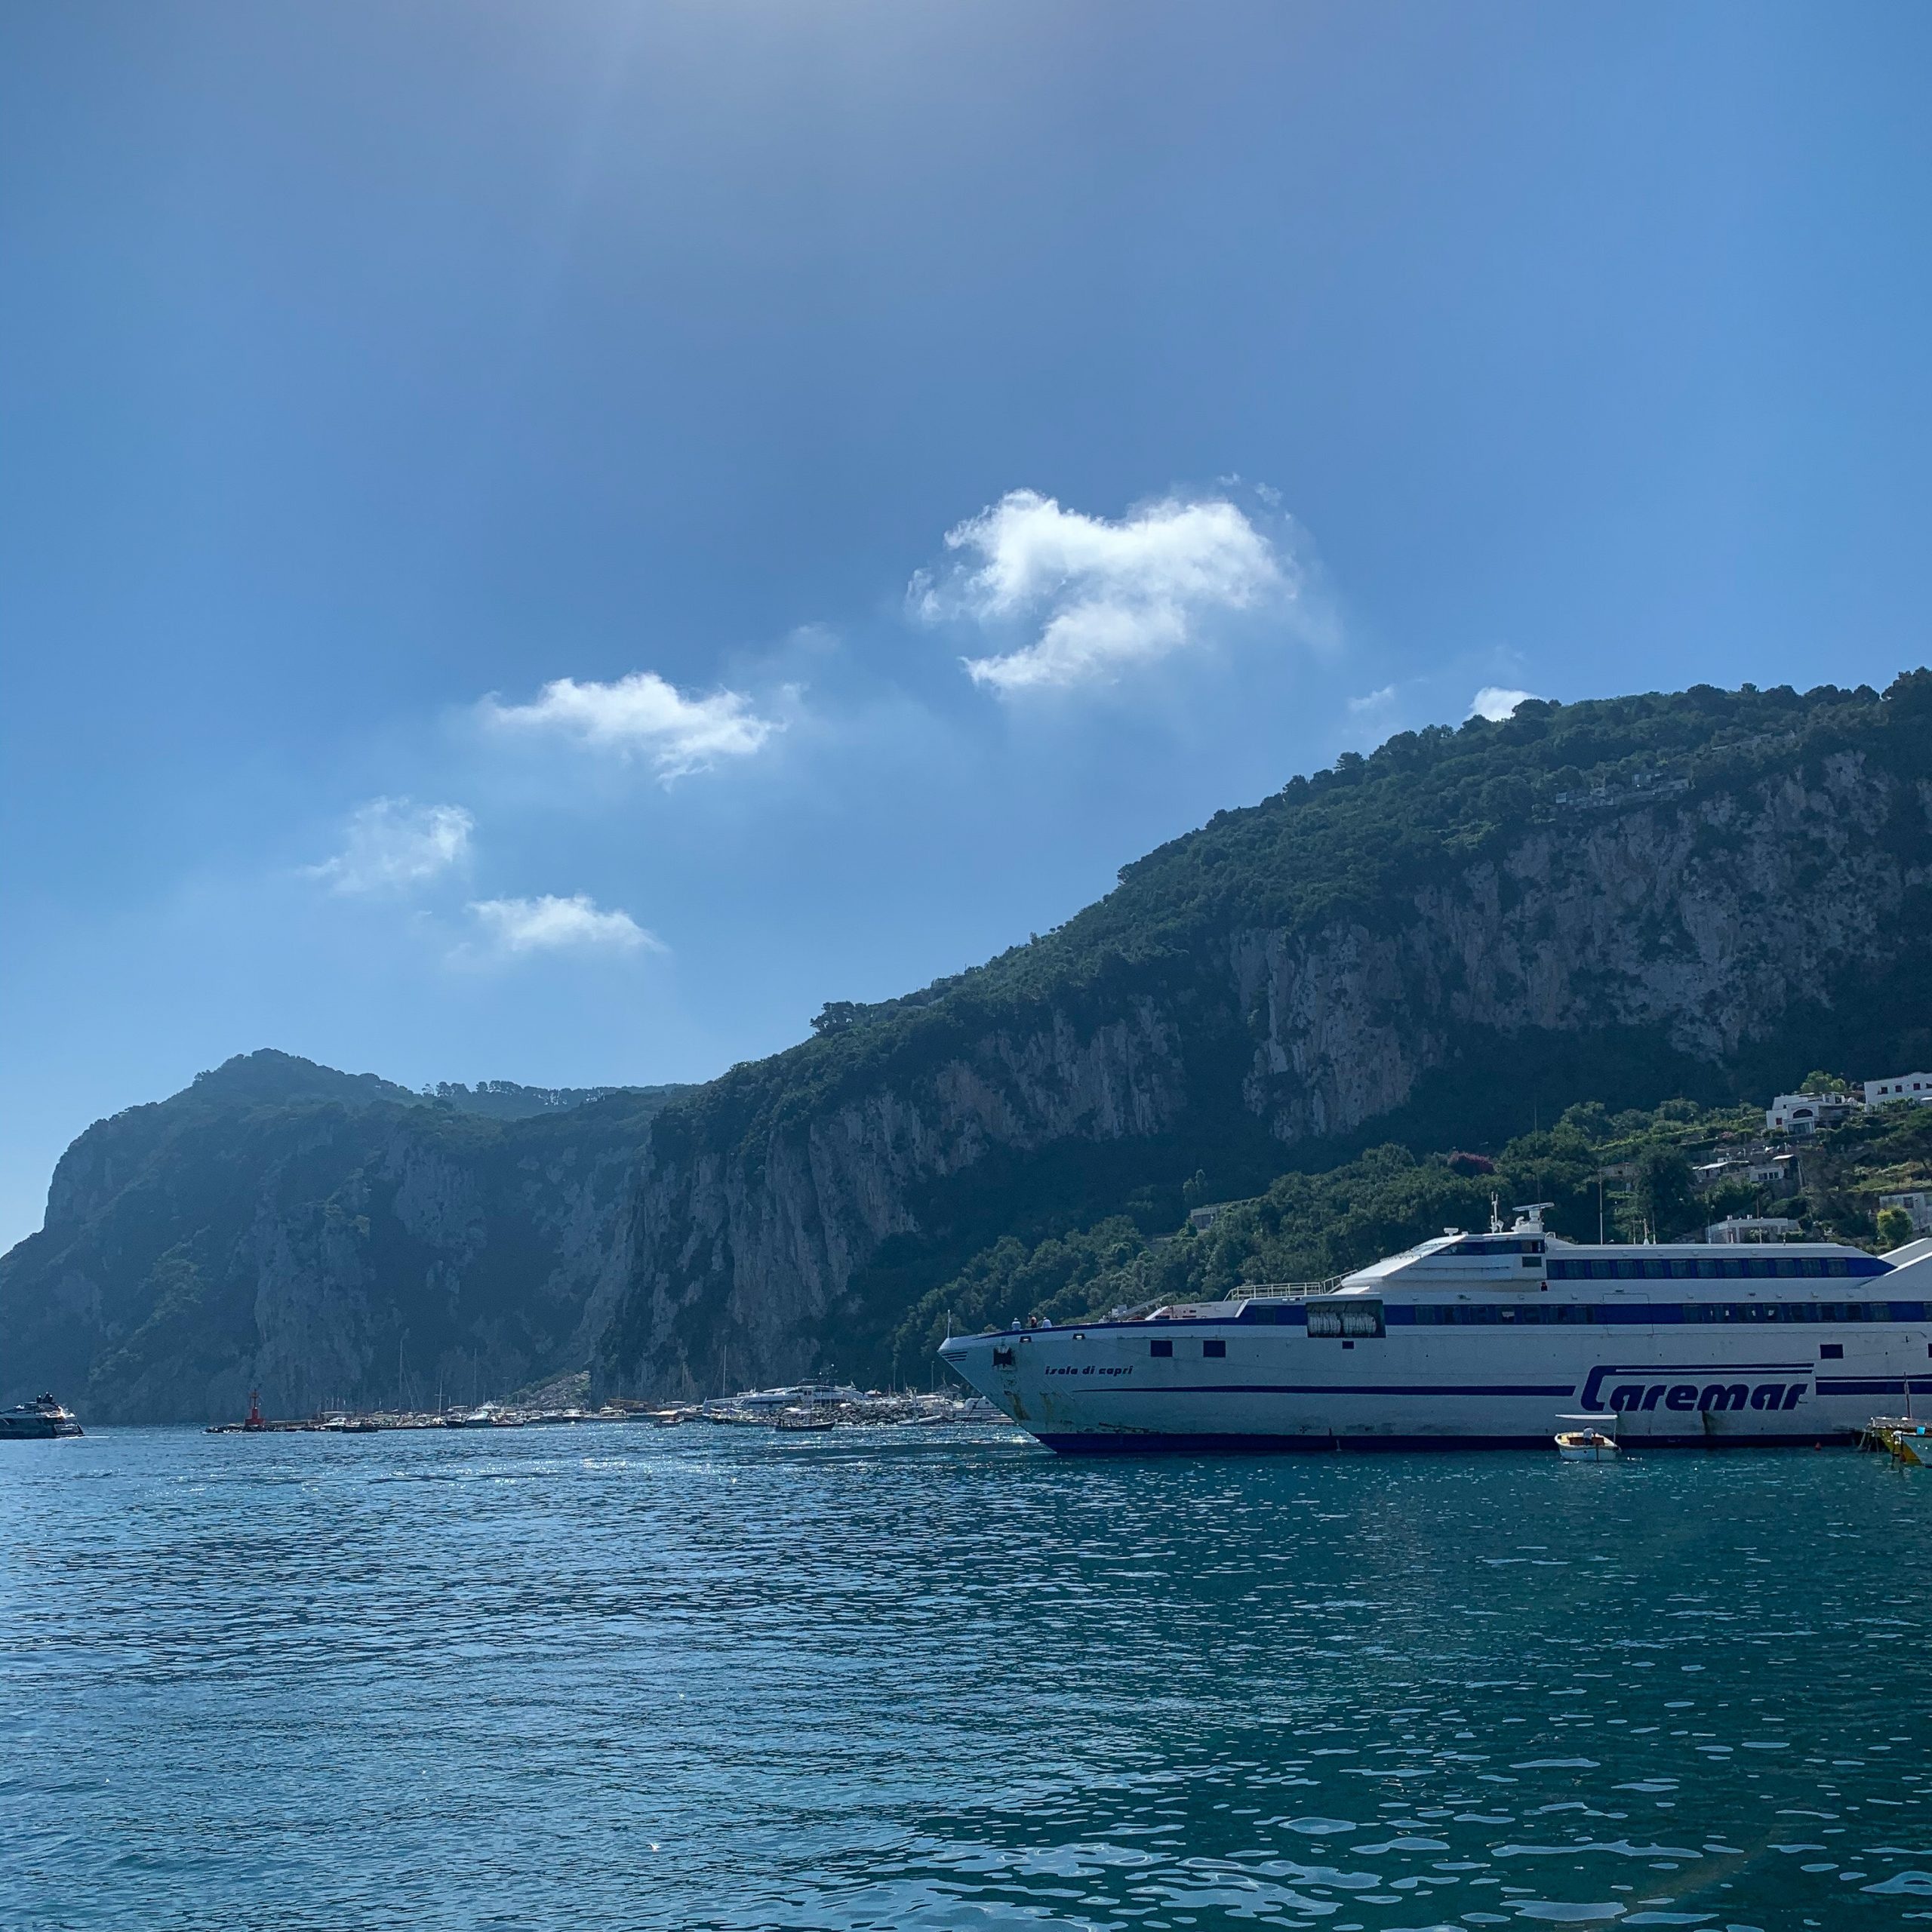 Everything you need to know to plan a trip to the Amalfi Coast!